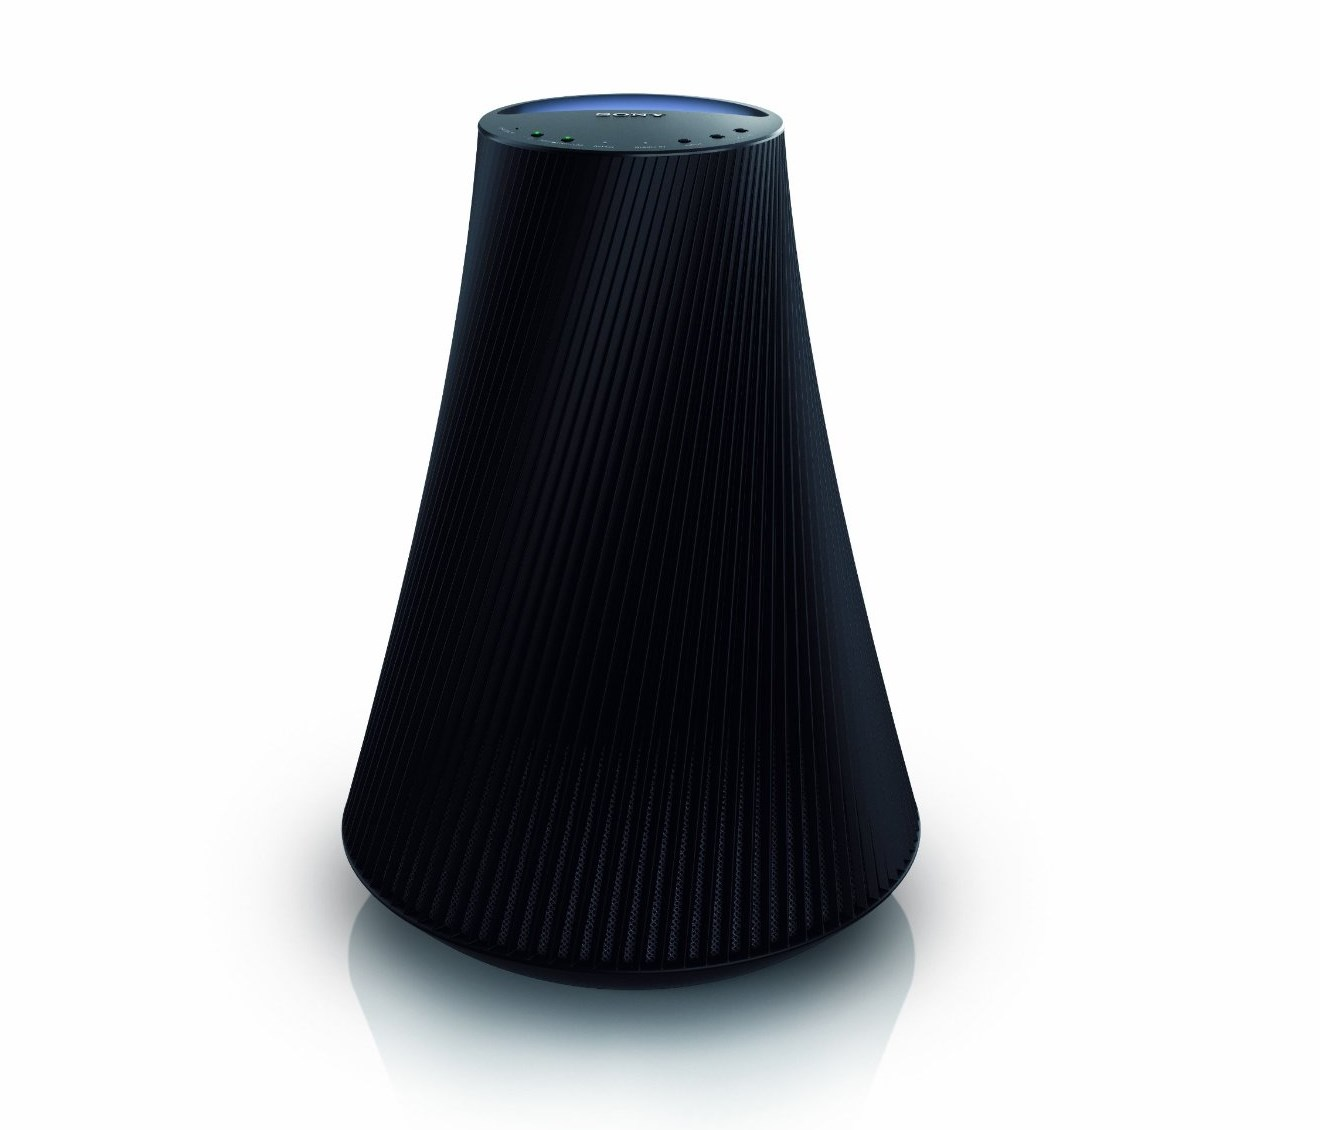 Sony SA-NS500 Portable Wi-Fi Speaker